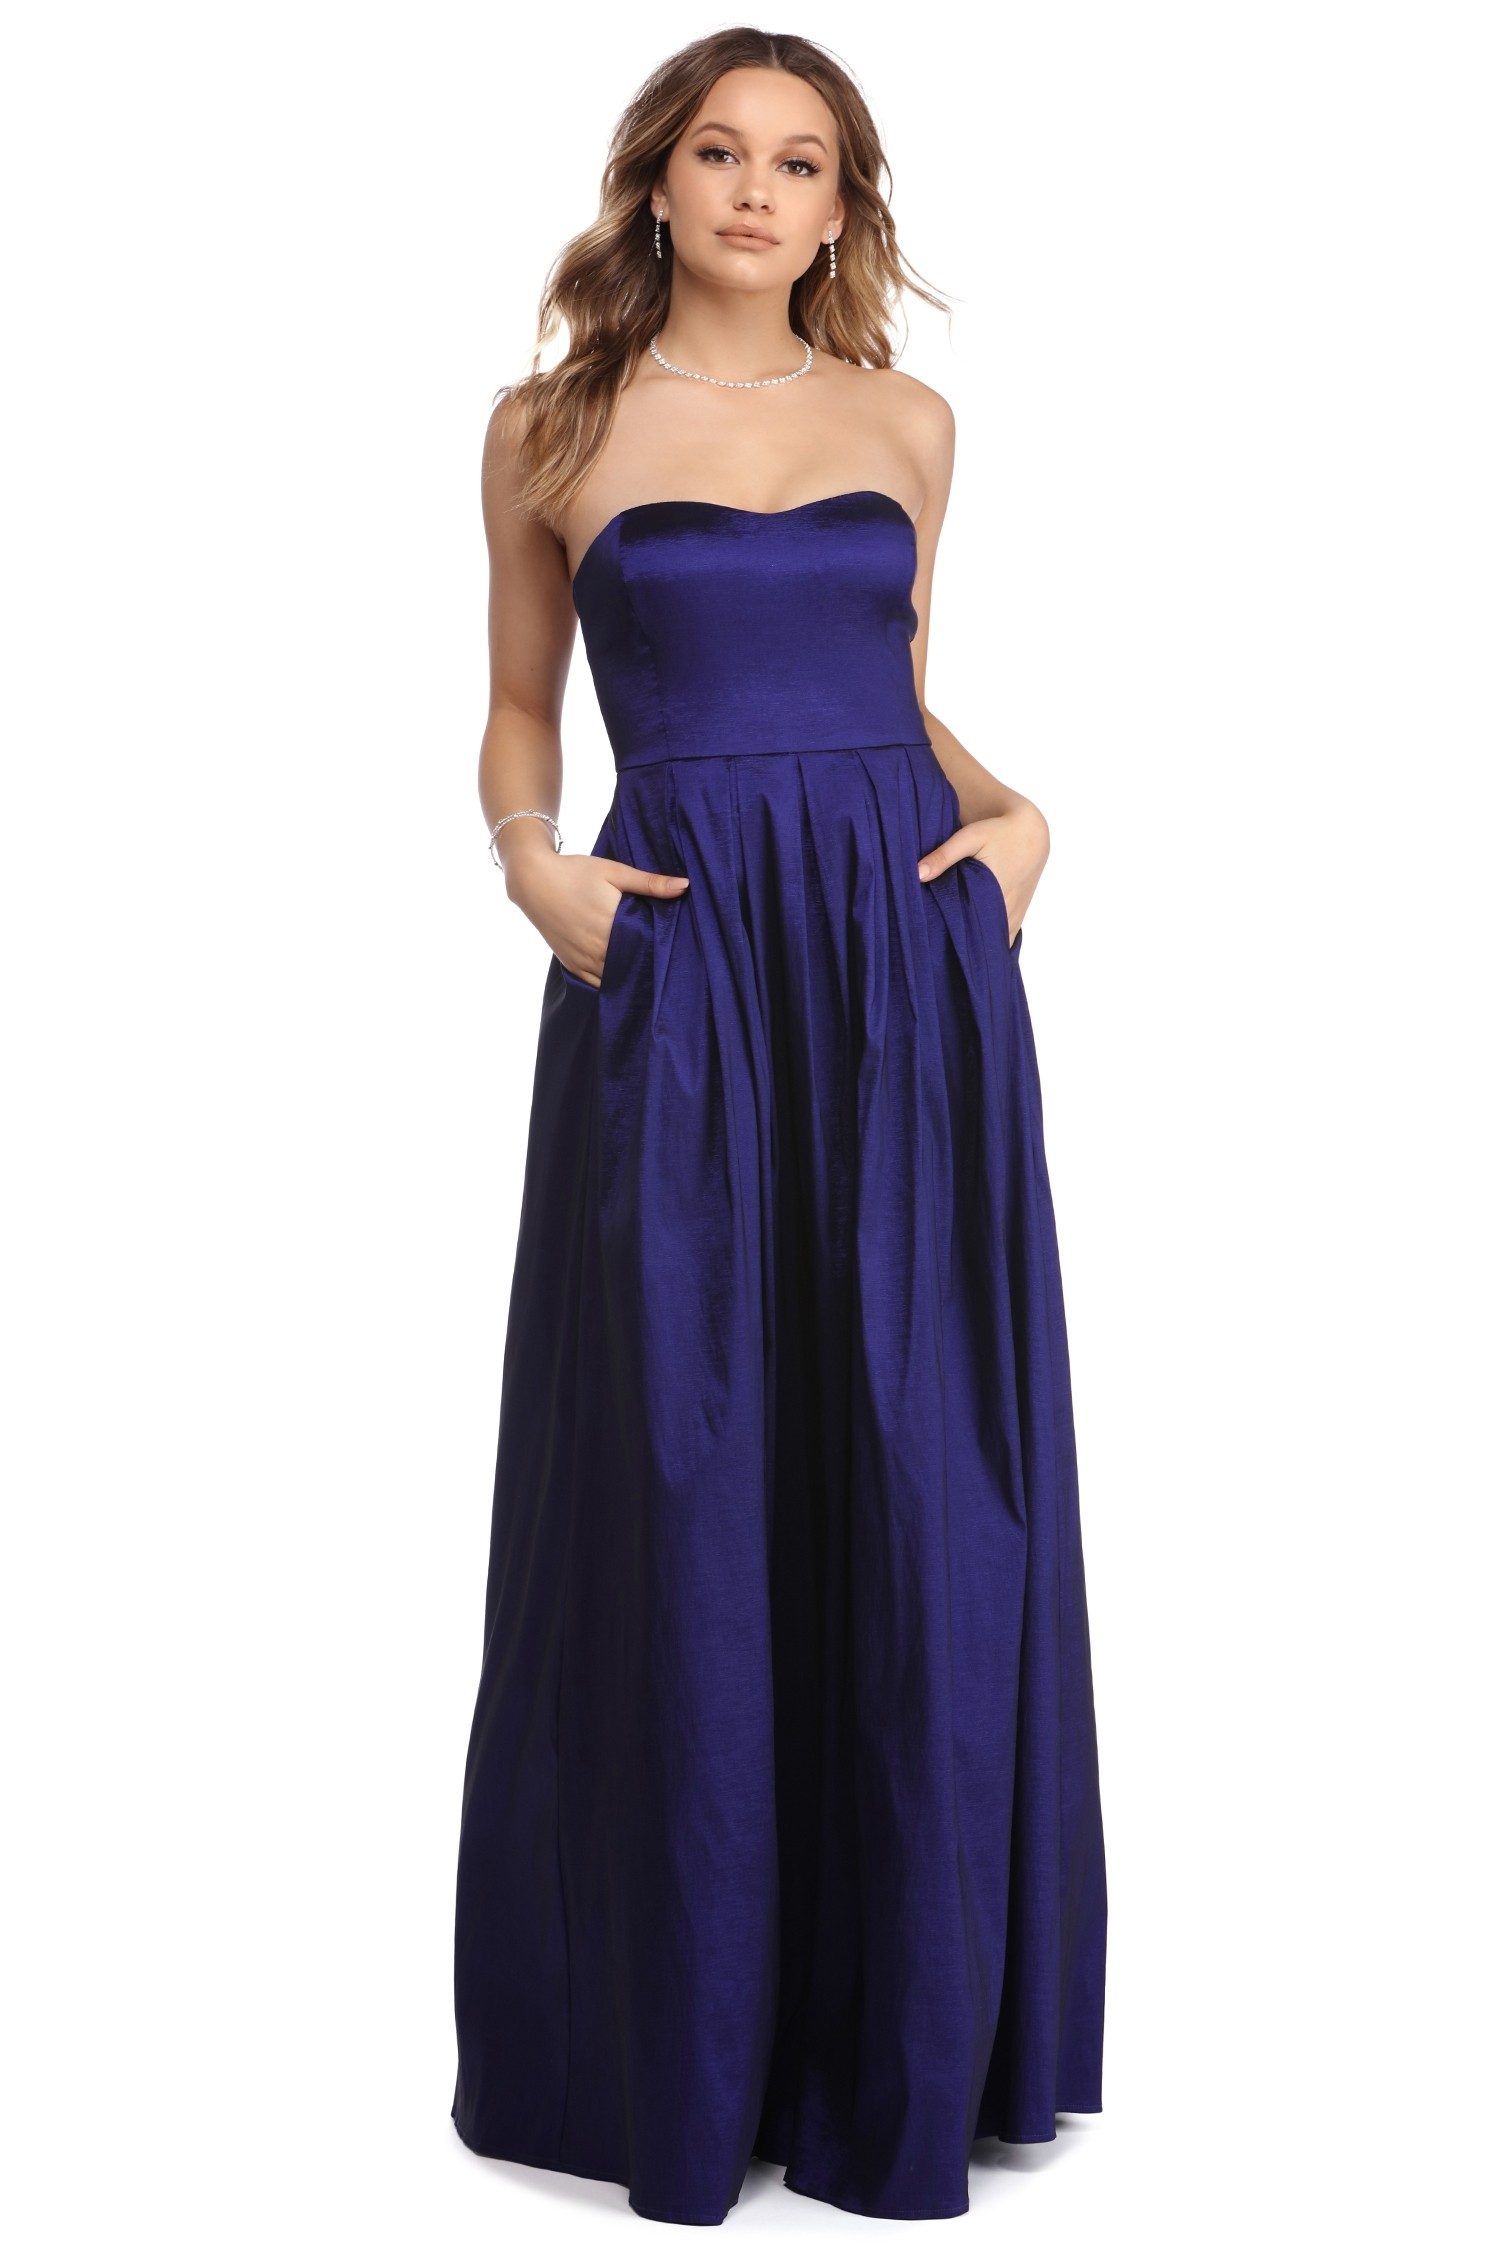 Strapless Sweetheart Long Royal Blue Satin Prom Dress with Pockets